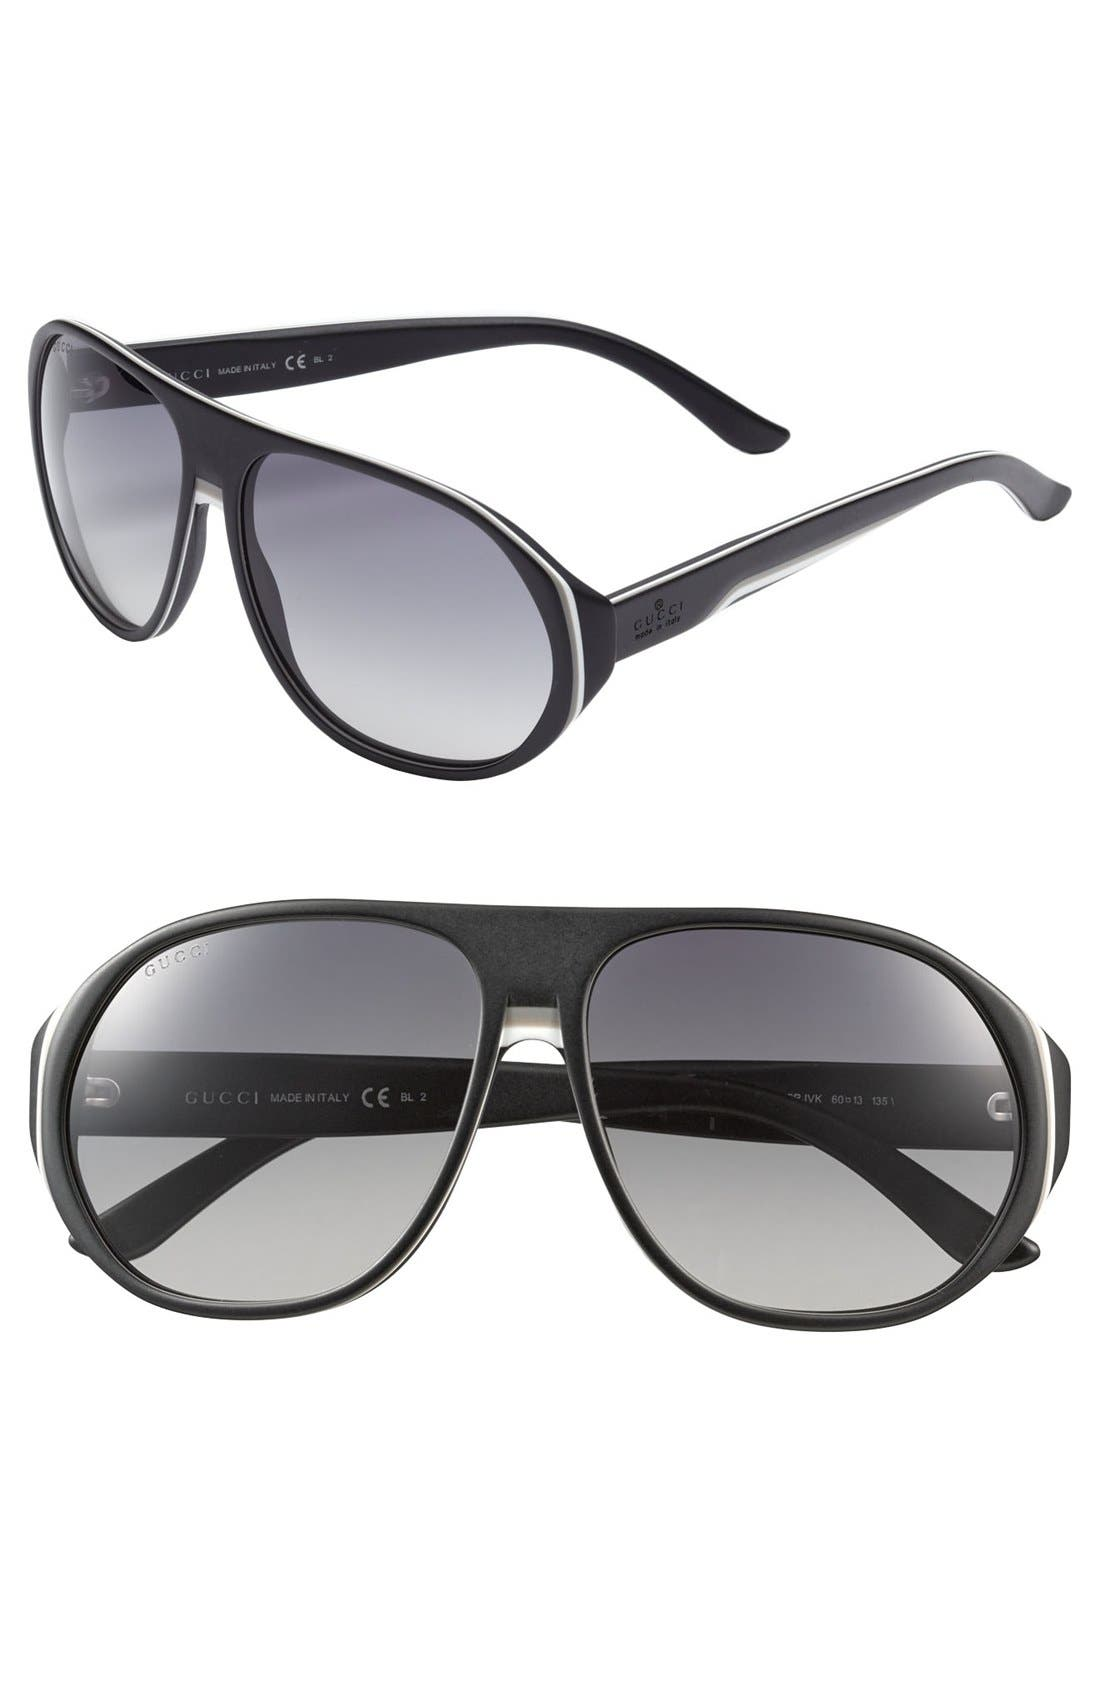 Alternate Image 1 Selected - Gucci '1025' 60mm Sunglasses